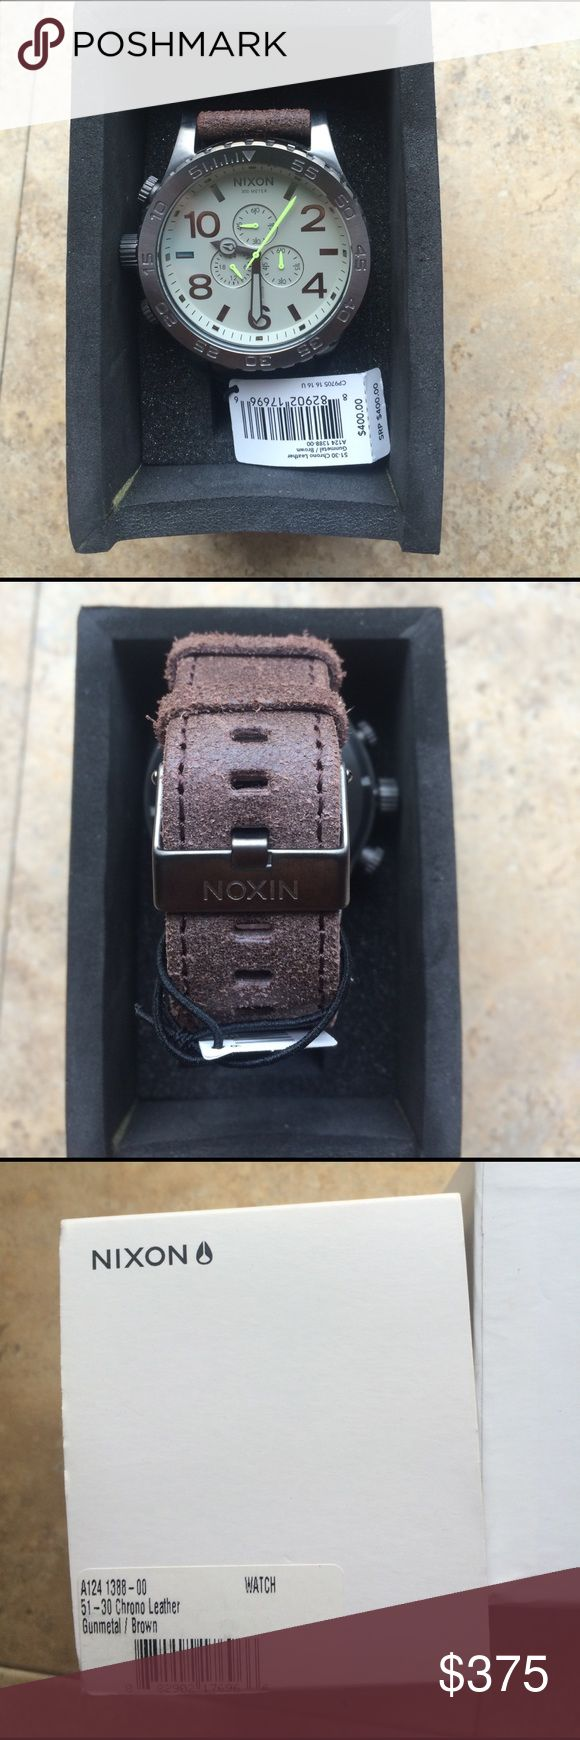 Nixon Watch Gunmetal and Weathered Leather Band. I bought it for my husband but it doesn't fit his wrist. Never been worn. Box and papers included. Nixon Accessories Watches